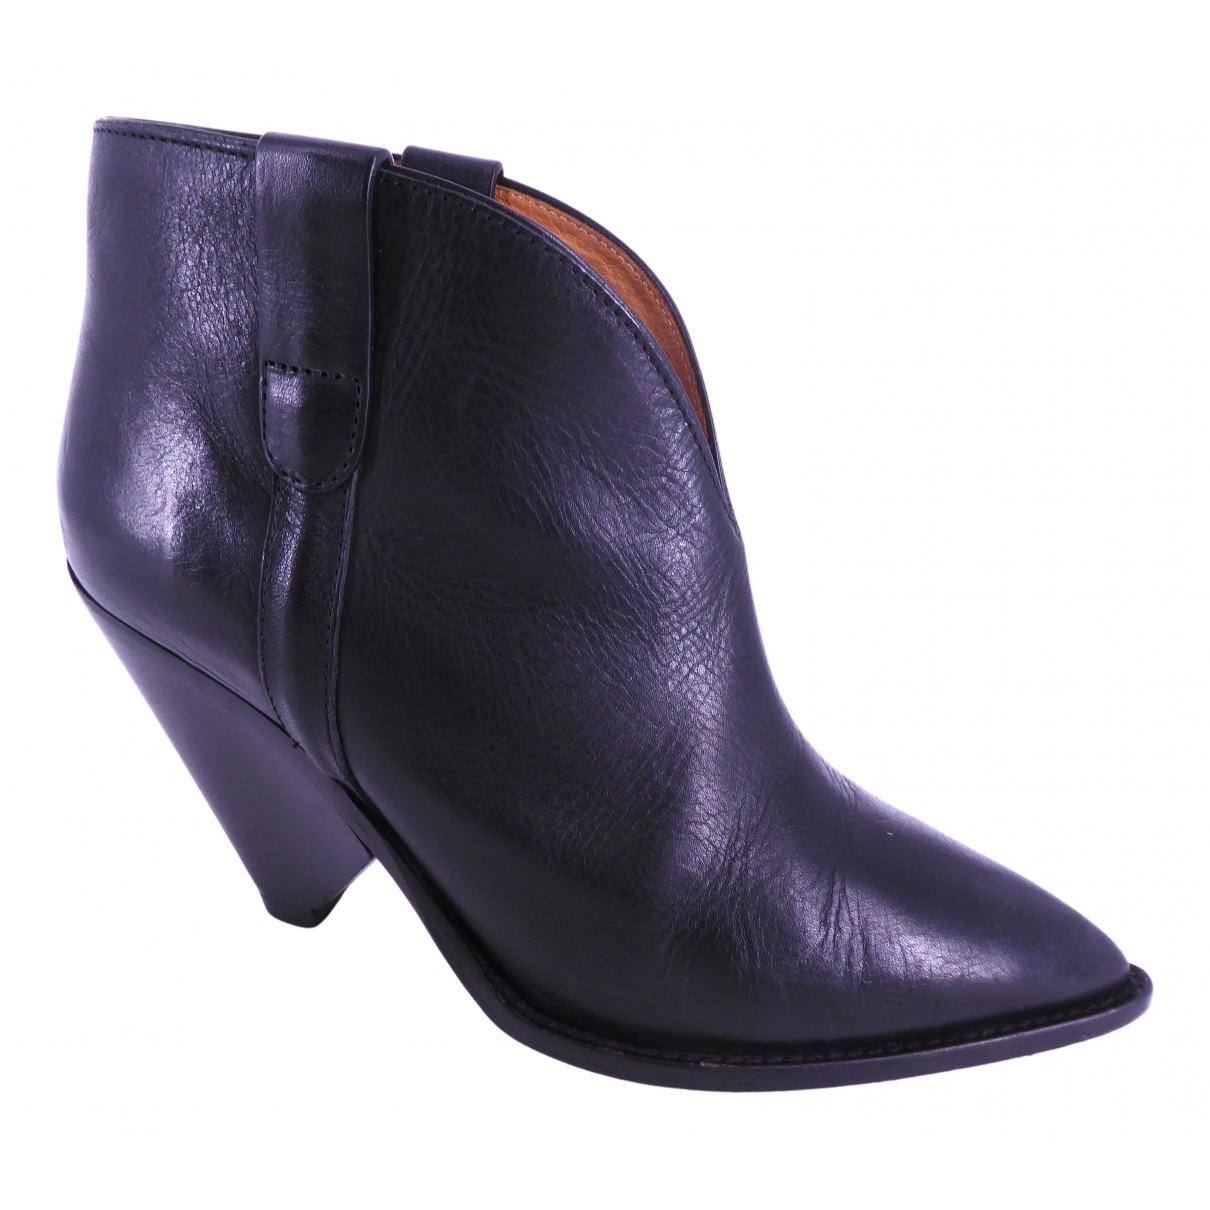 Isabel Marant N Black Leather Ankle boots for Women 38 EU